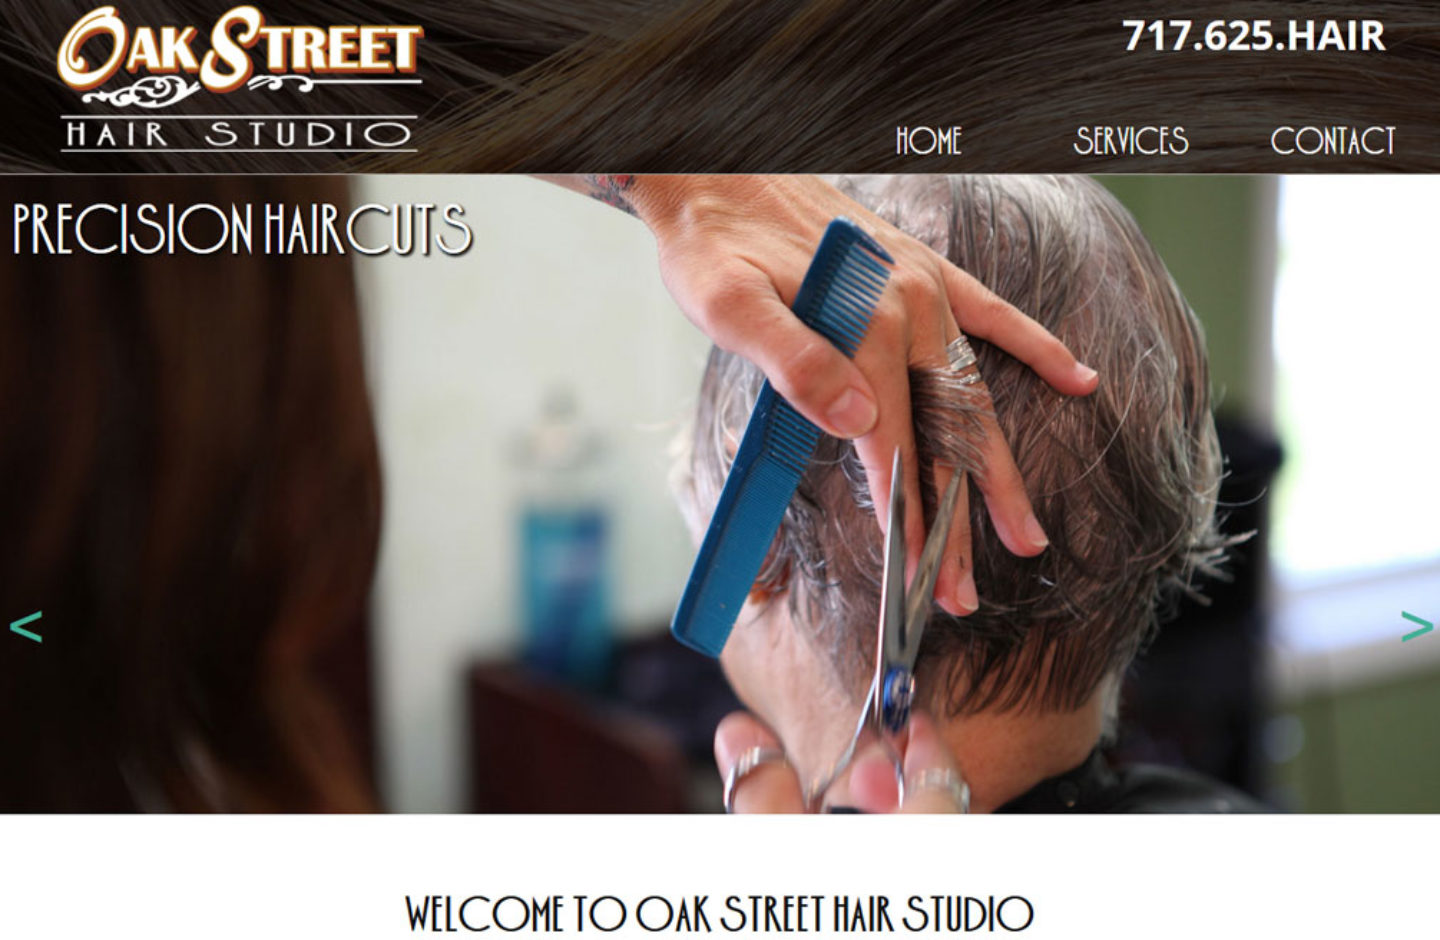 Oak Street Hair Studio